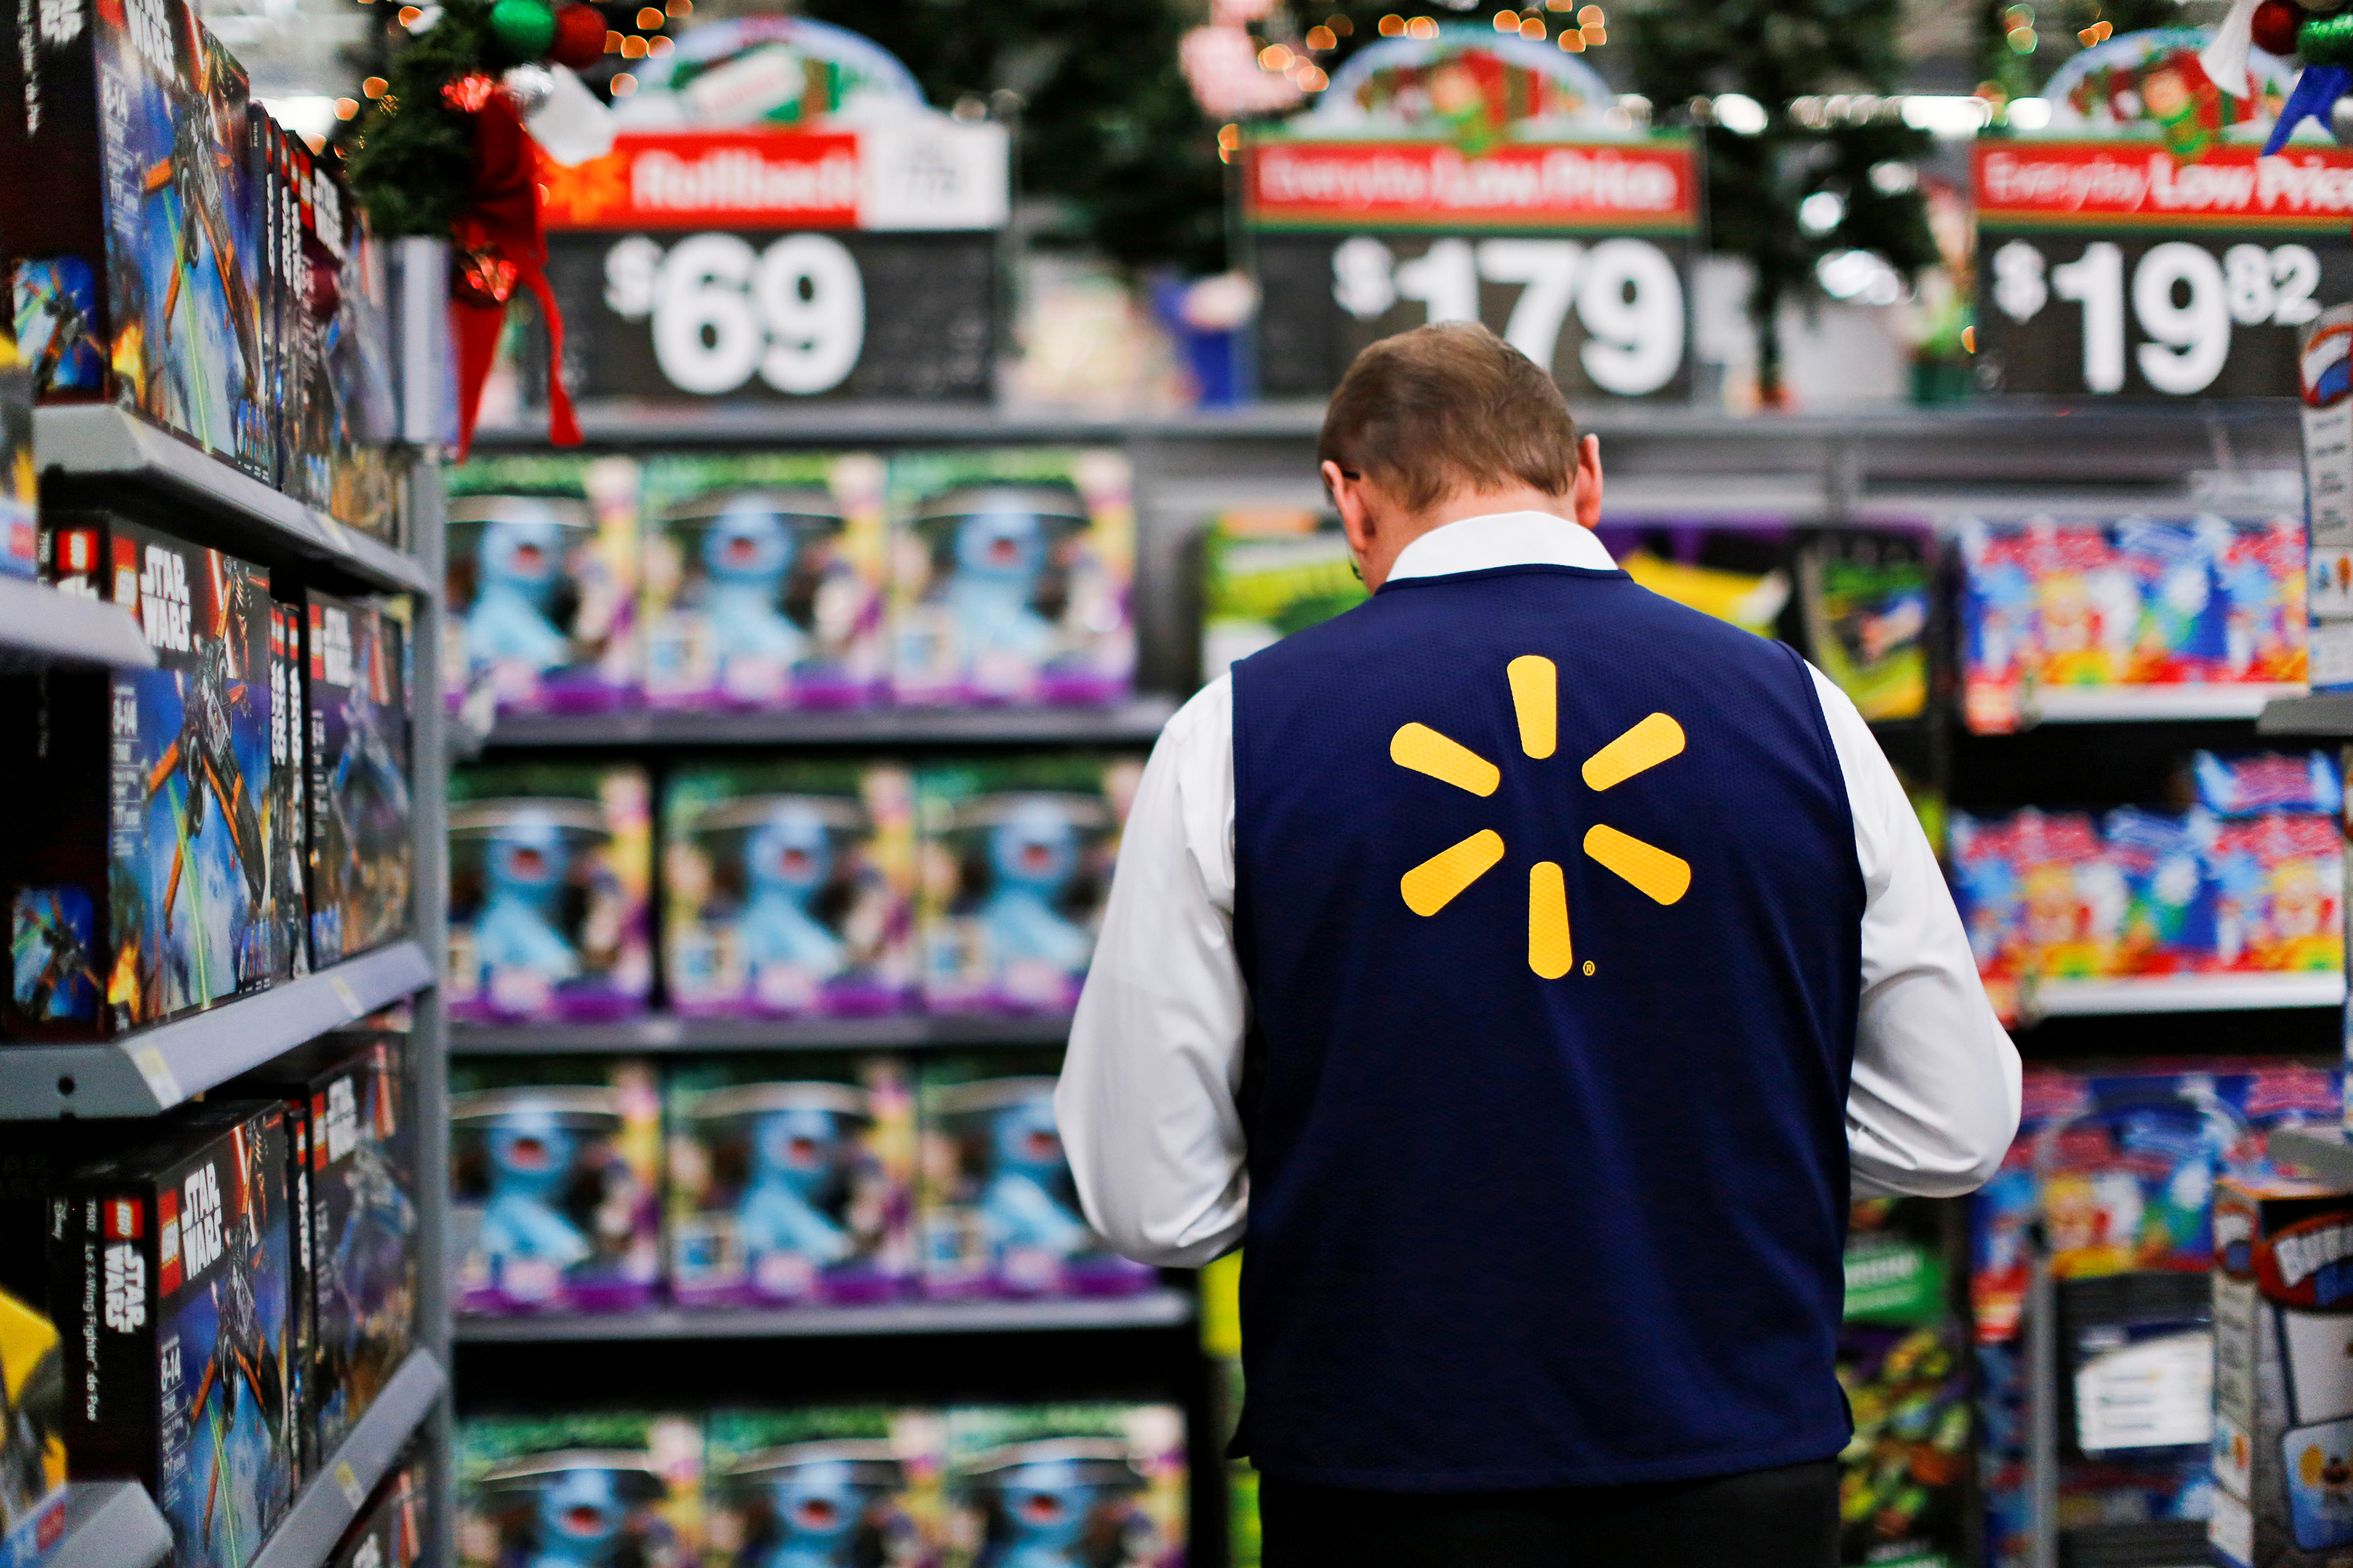 A Walmart worker organises products for Christmas season at a Walmart store in Teterboro, New Jersey, U.S., October 26, 2016. REUTERS/Eduardo Munoz